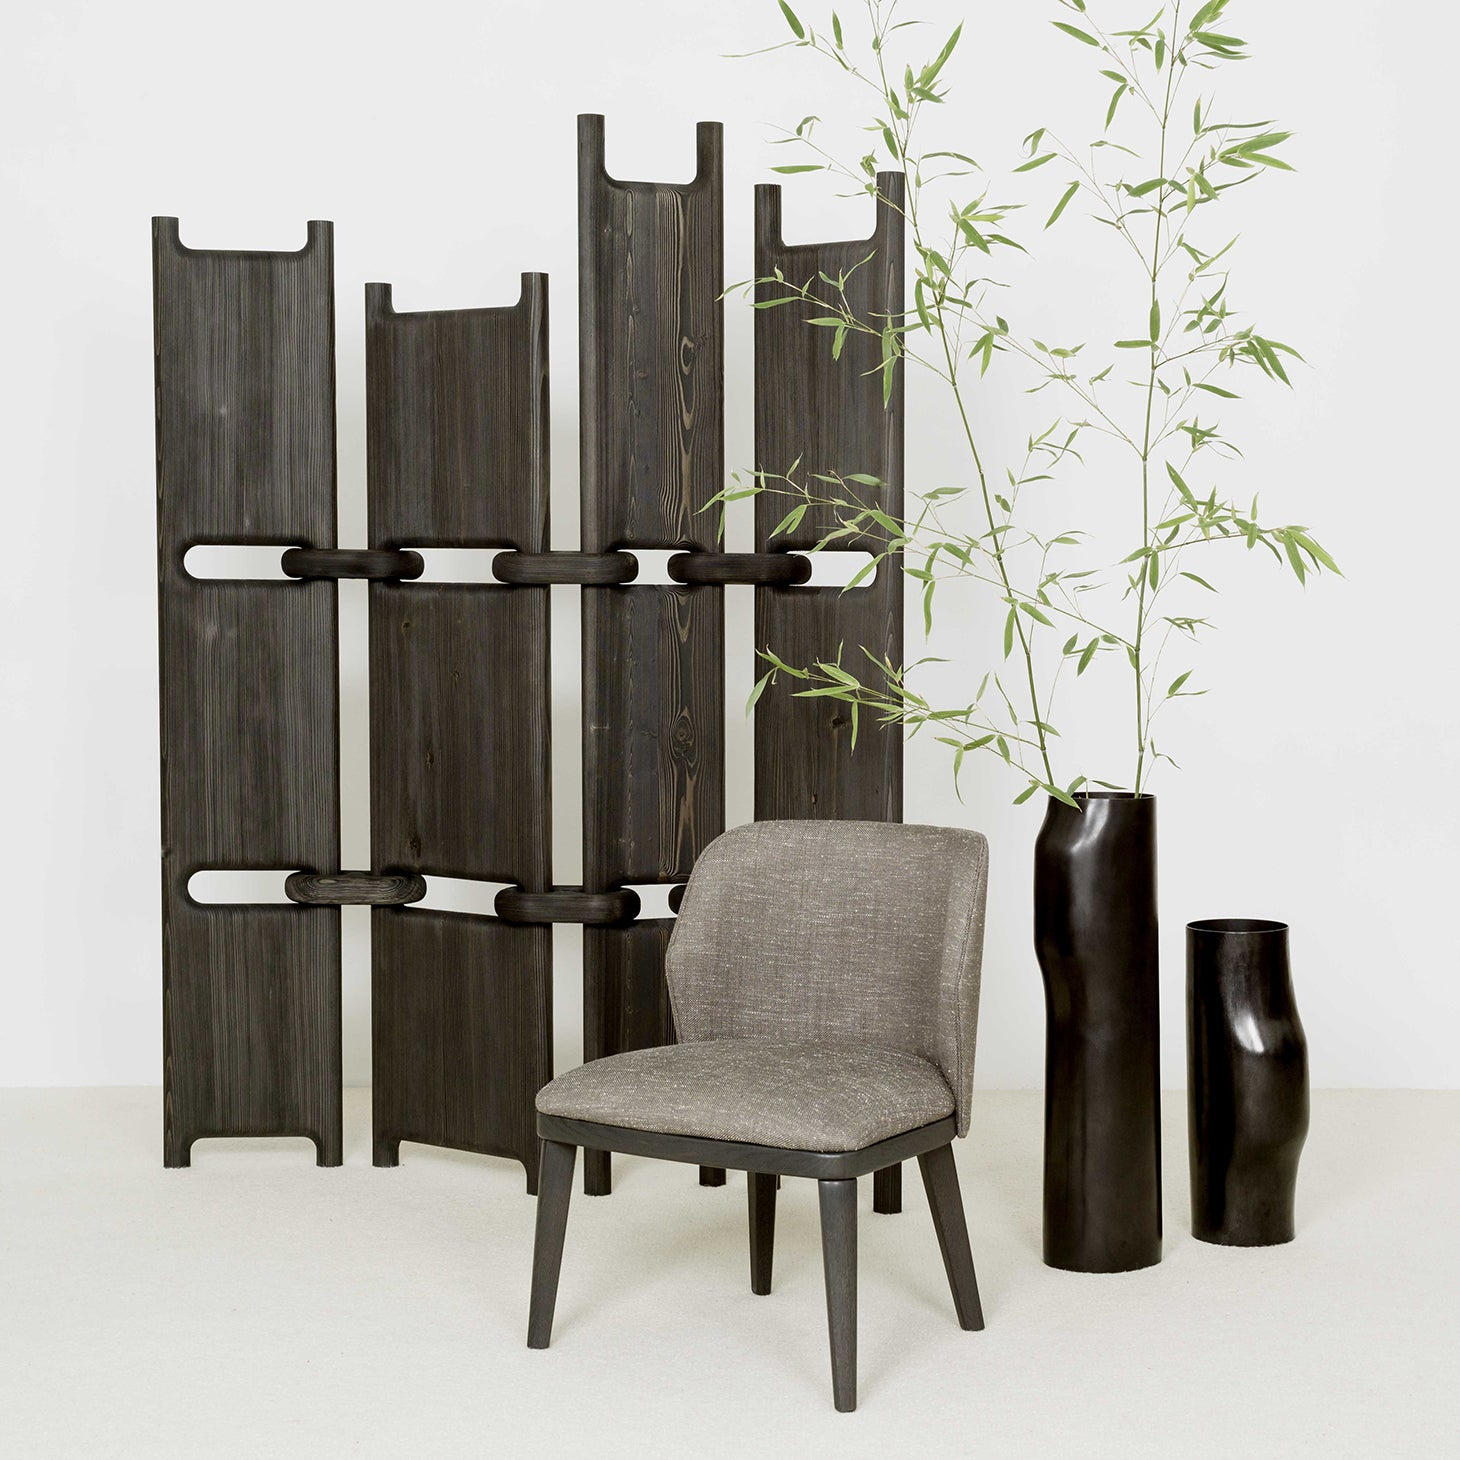 EUS Screen Accessories Christophe Delcourt Designer Furniture Sku: 765-100-10071